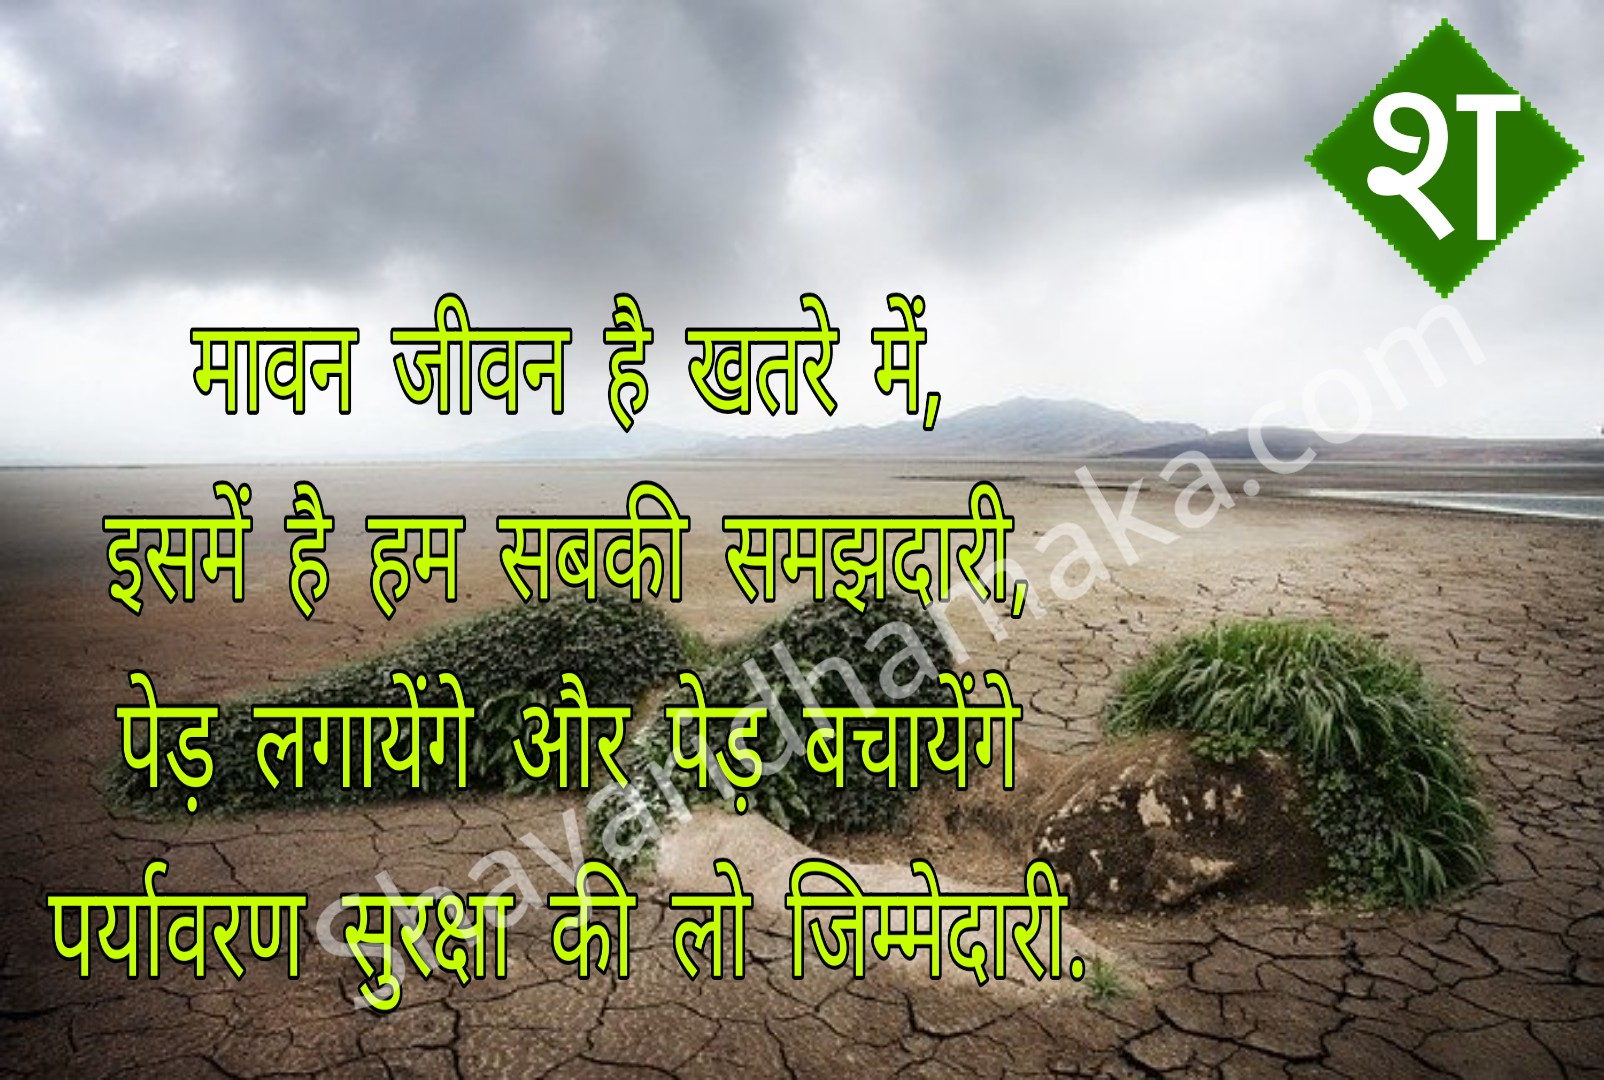 Quotes on environment in hindi